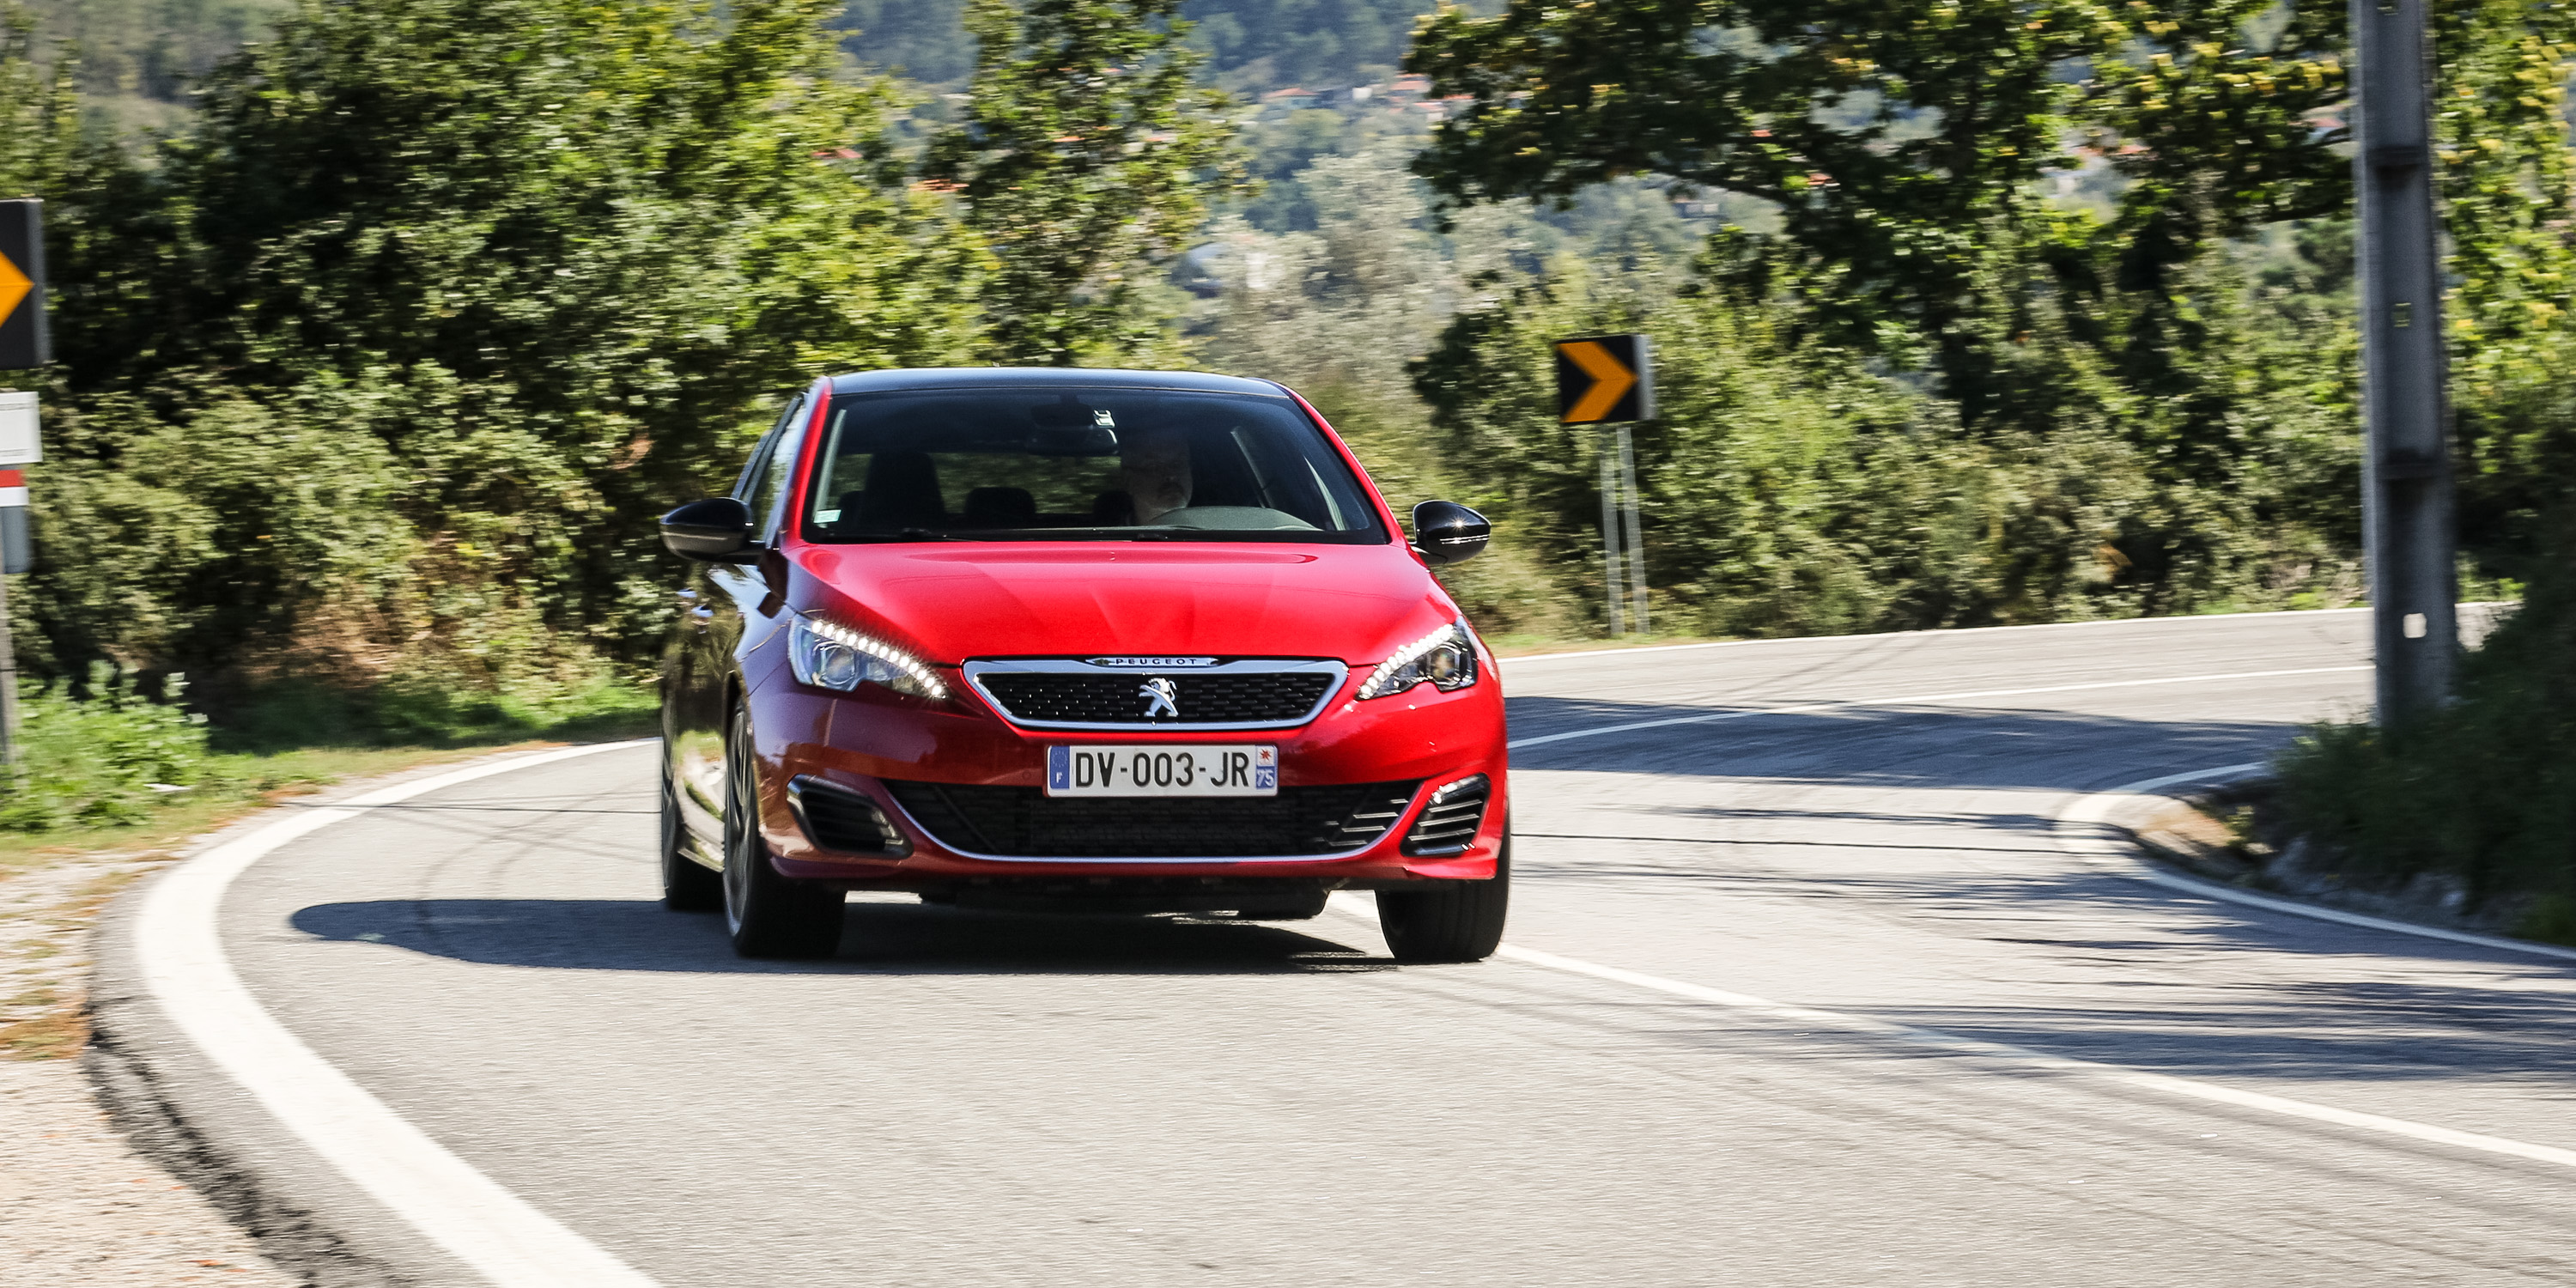 2016 Peugeot 308 GTi Front View